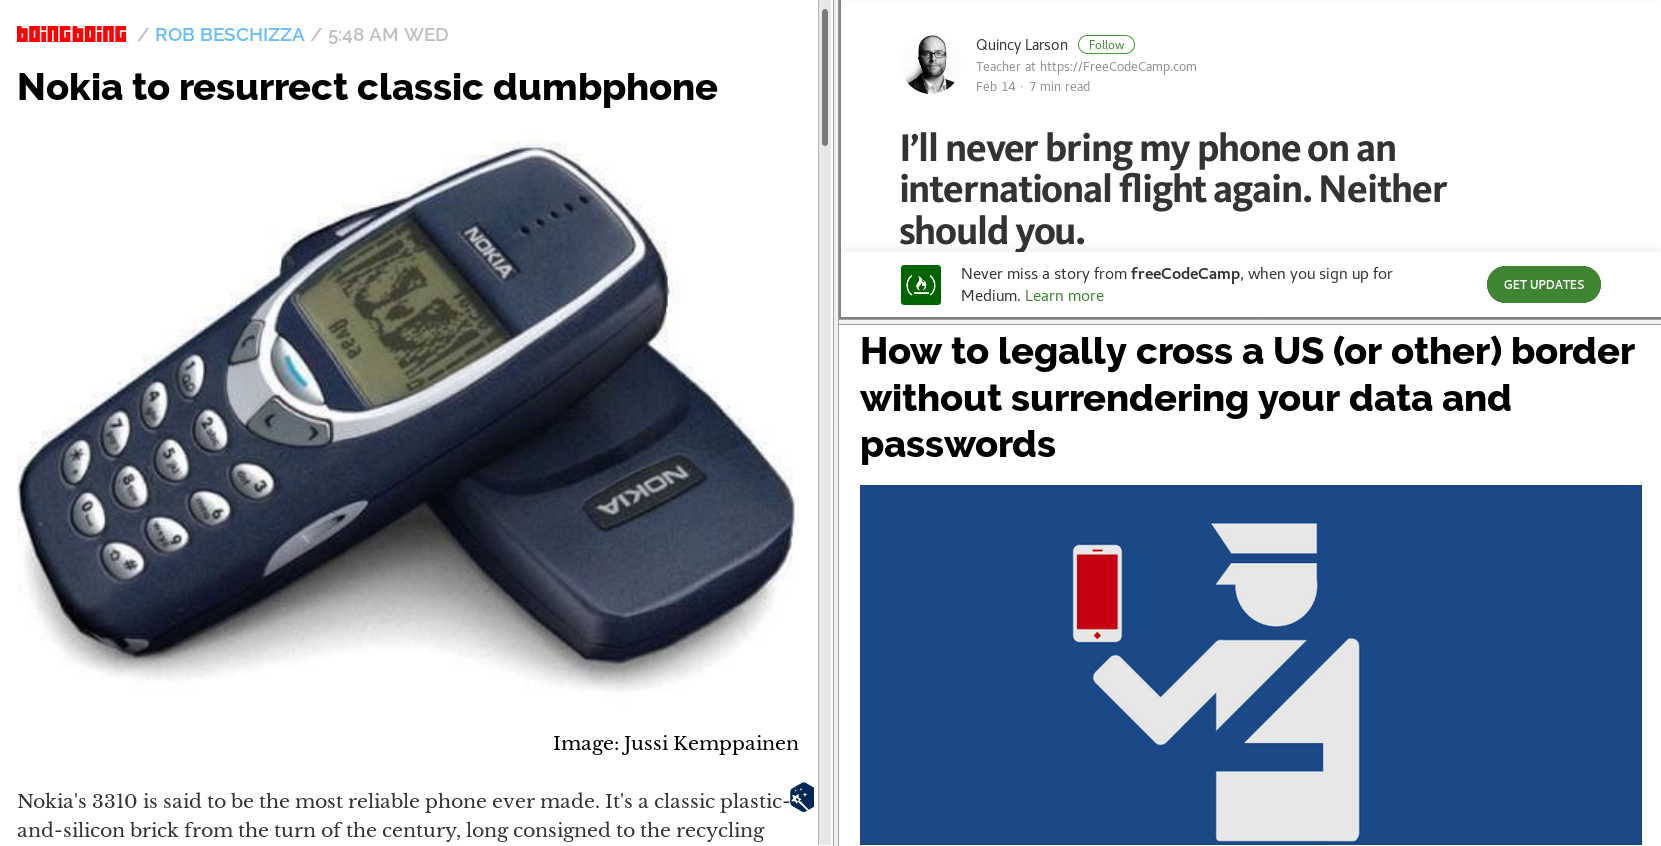 Dumbphone is the new Smartphone. Especially for traveling /img/dumbphone-is-the-smartest-phone.png